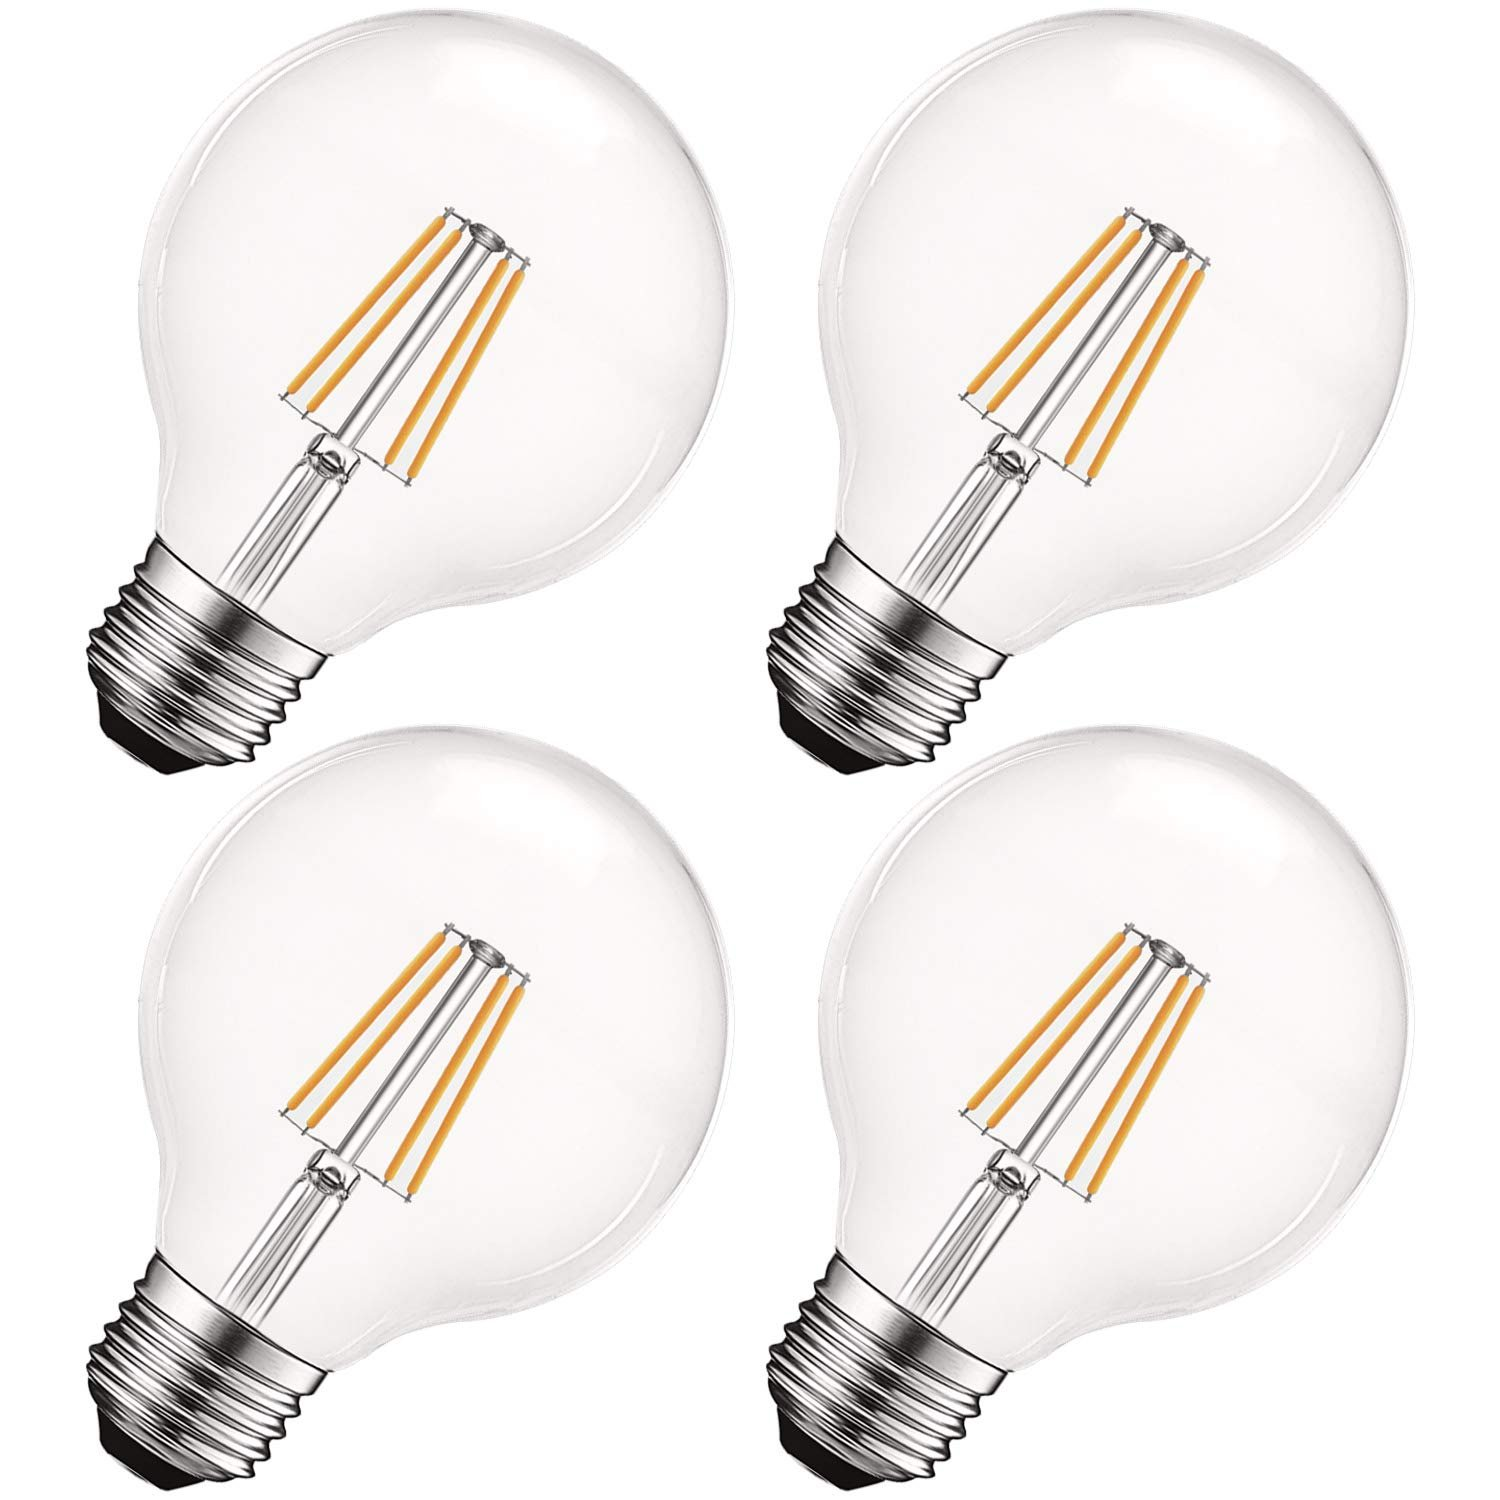 Luxrite Vintage G25 Led Globe Light Bulbs 60w Equivalent